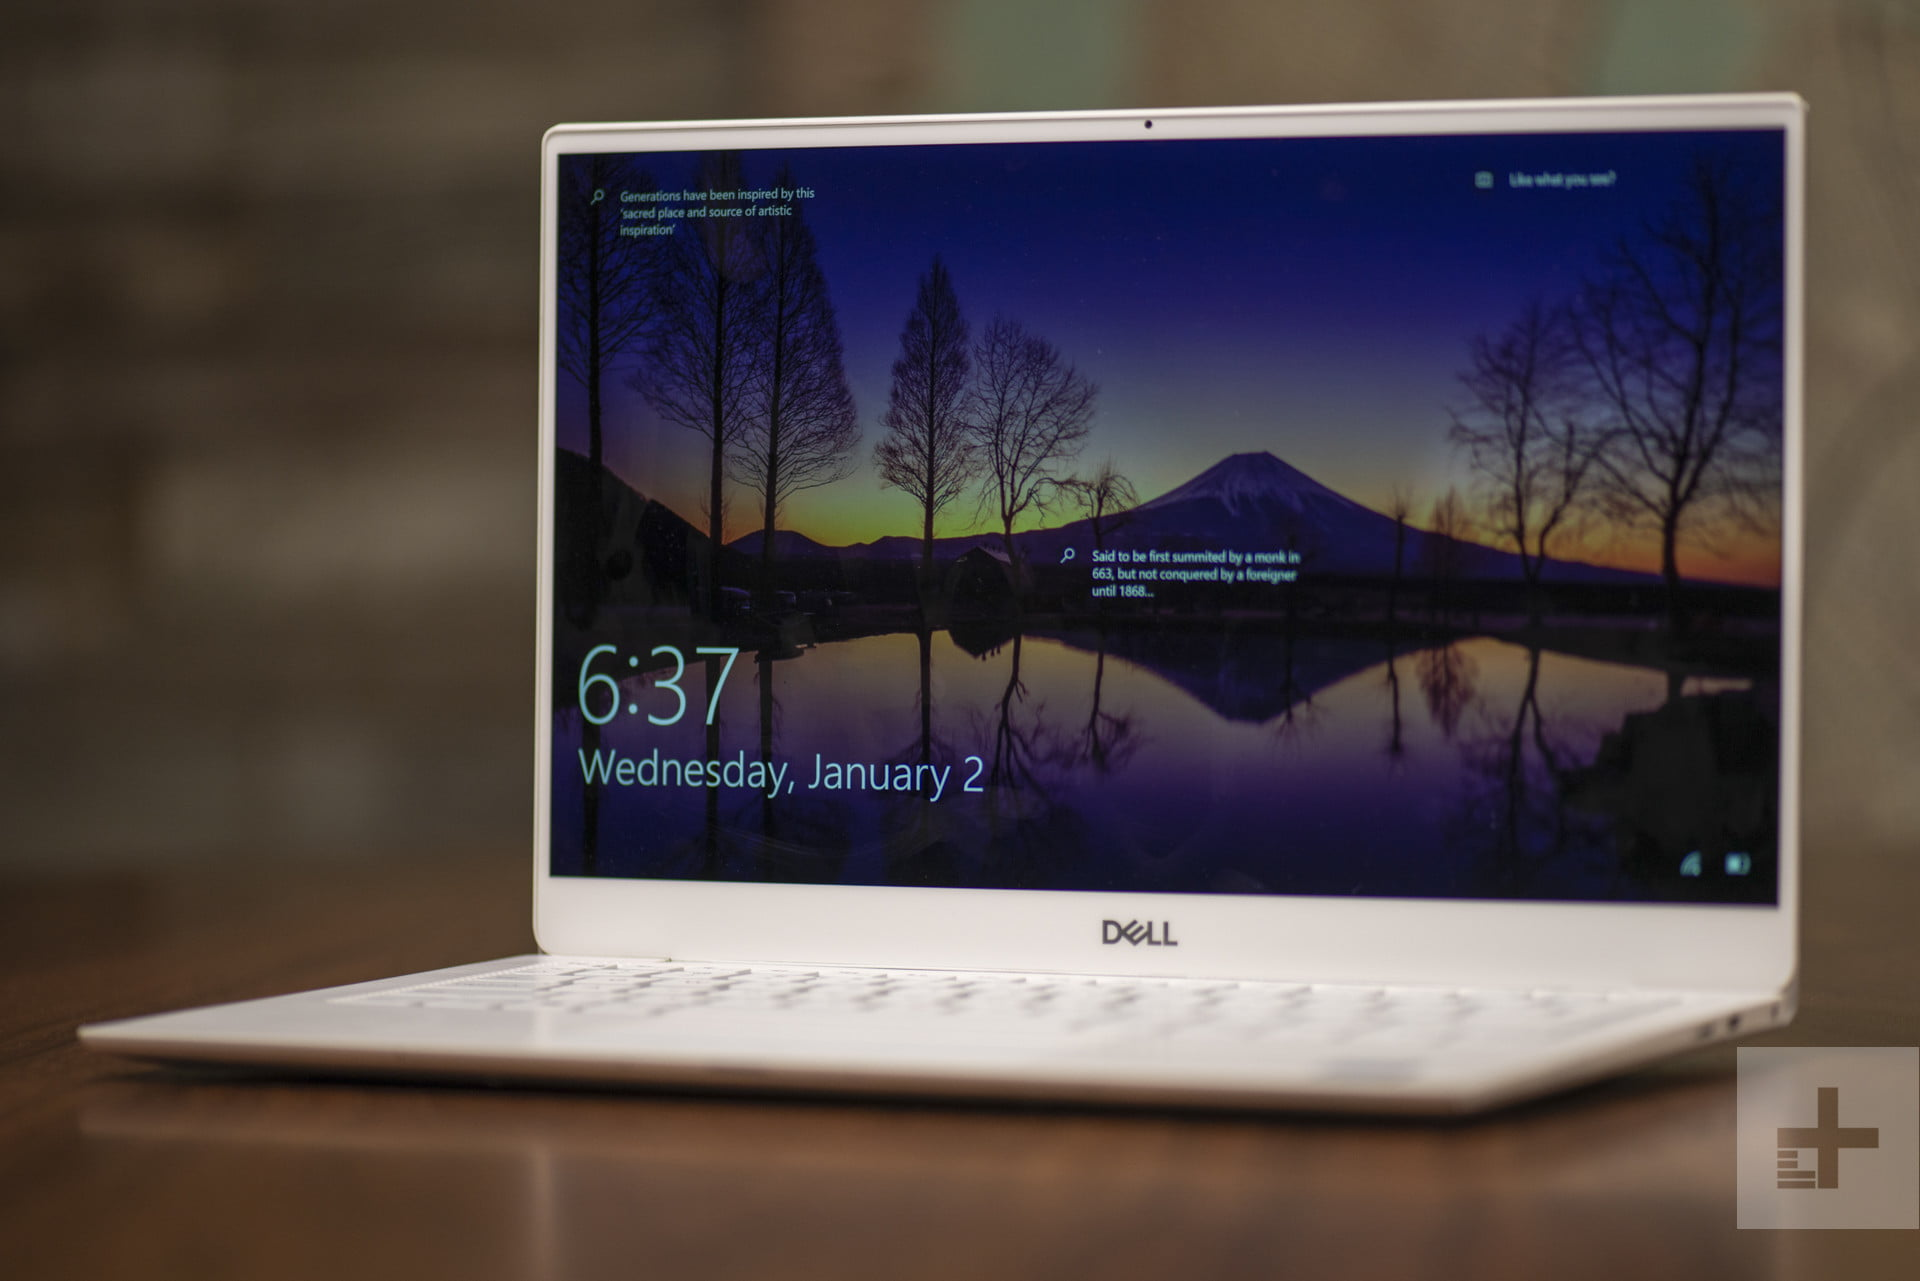 dell xps 13 (2019) review: a near-perfect laptop | ces 2019